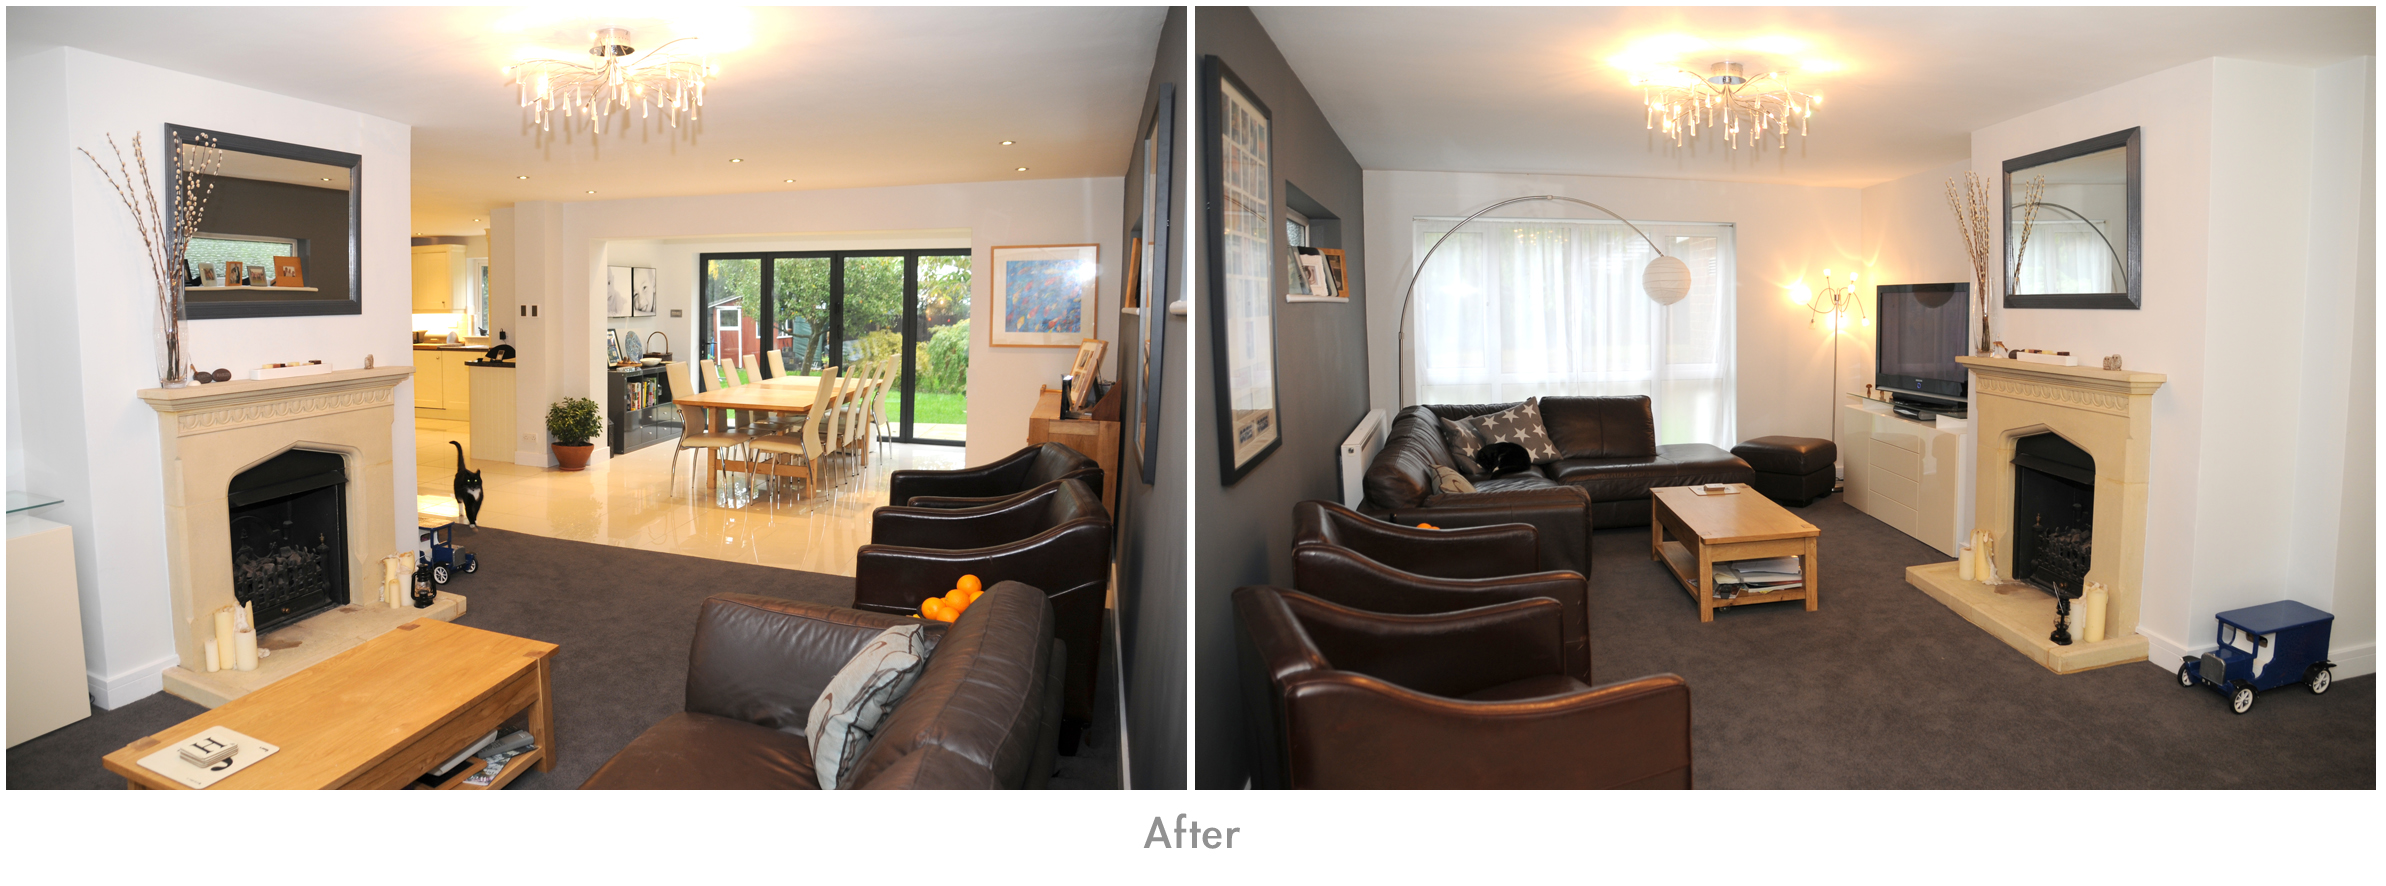 Before After In Maidenhead Dcs Building Services